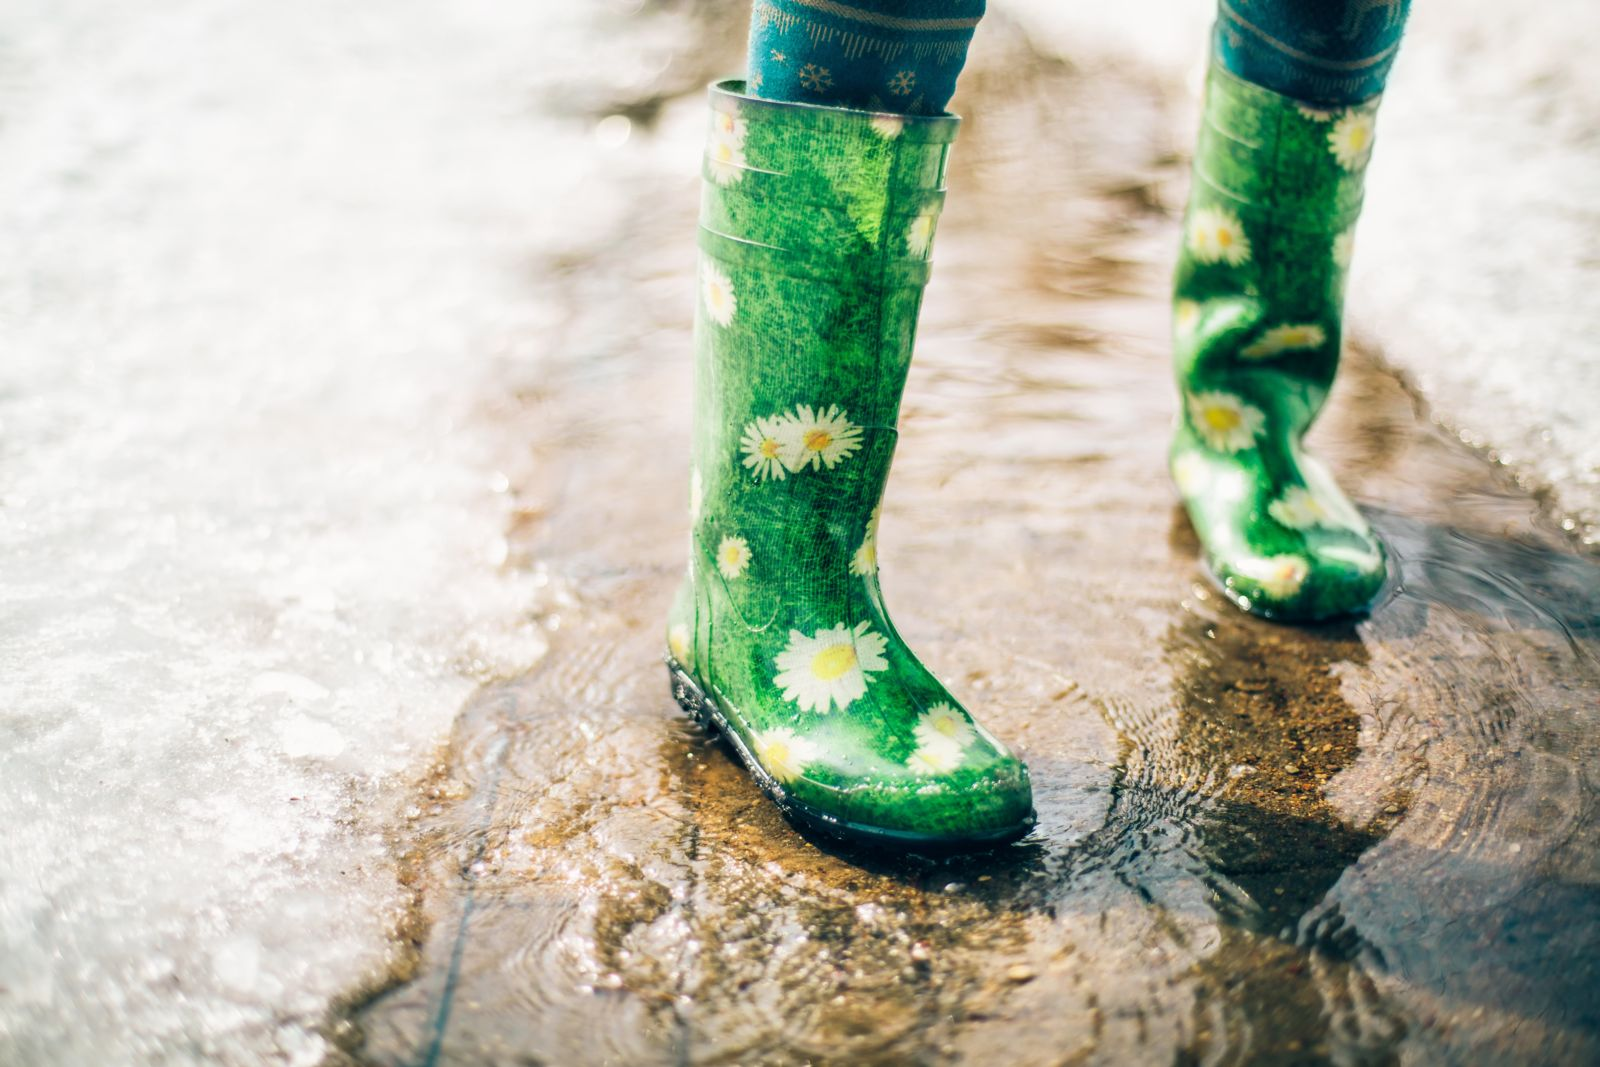 If your feet stay in wet boots for extended periods of time, you're increasing your risk of foot infection